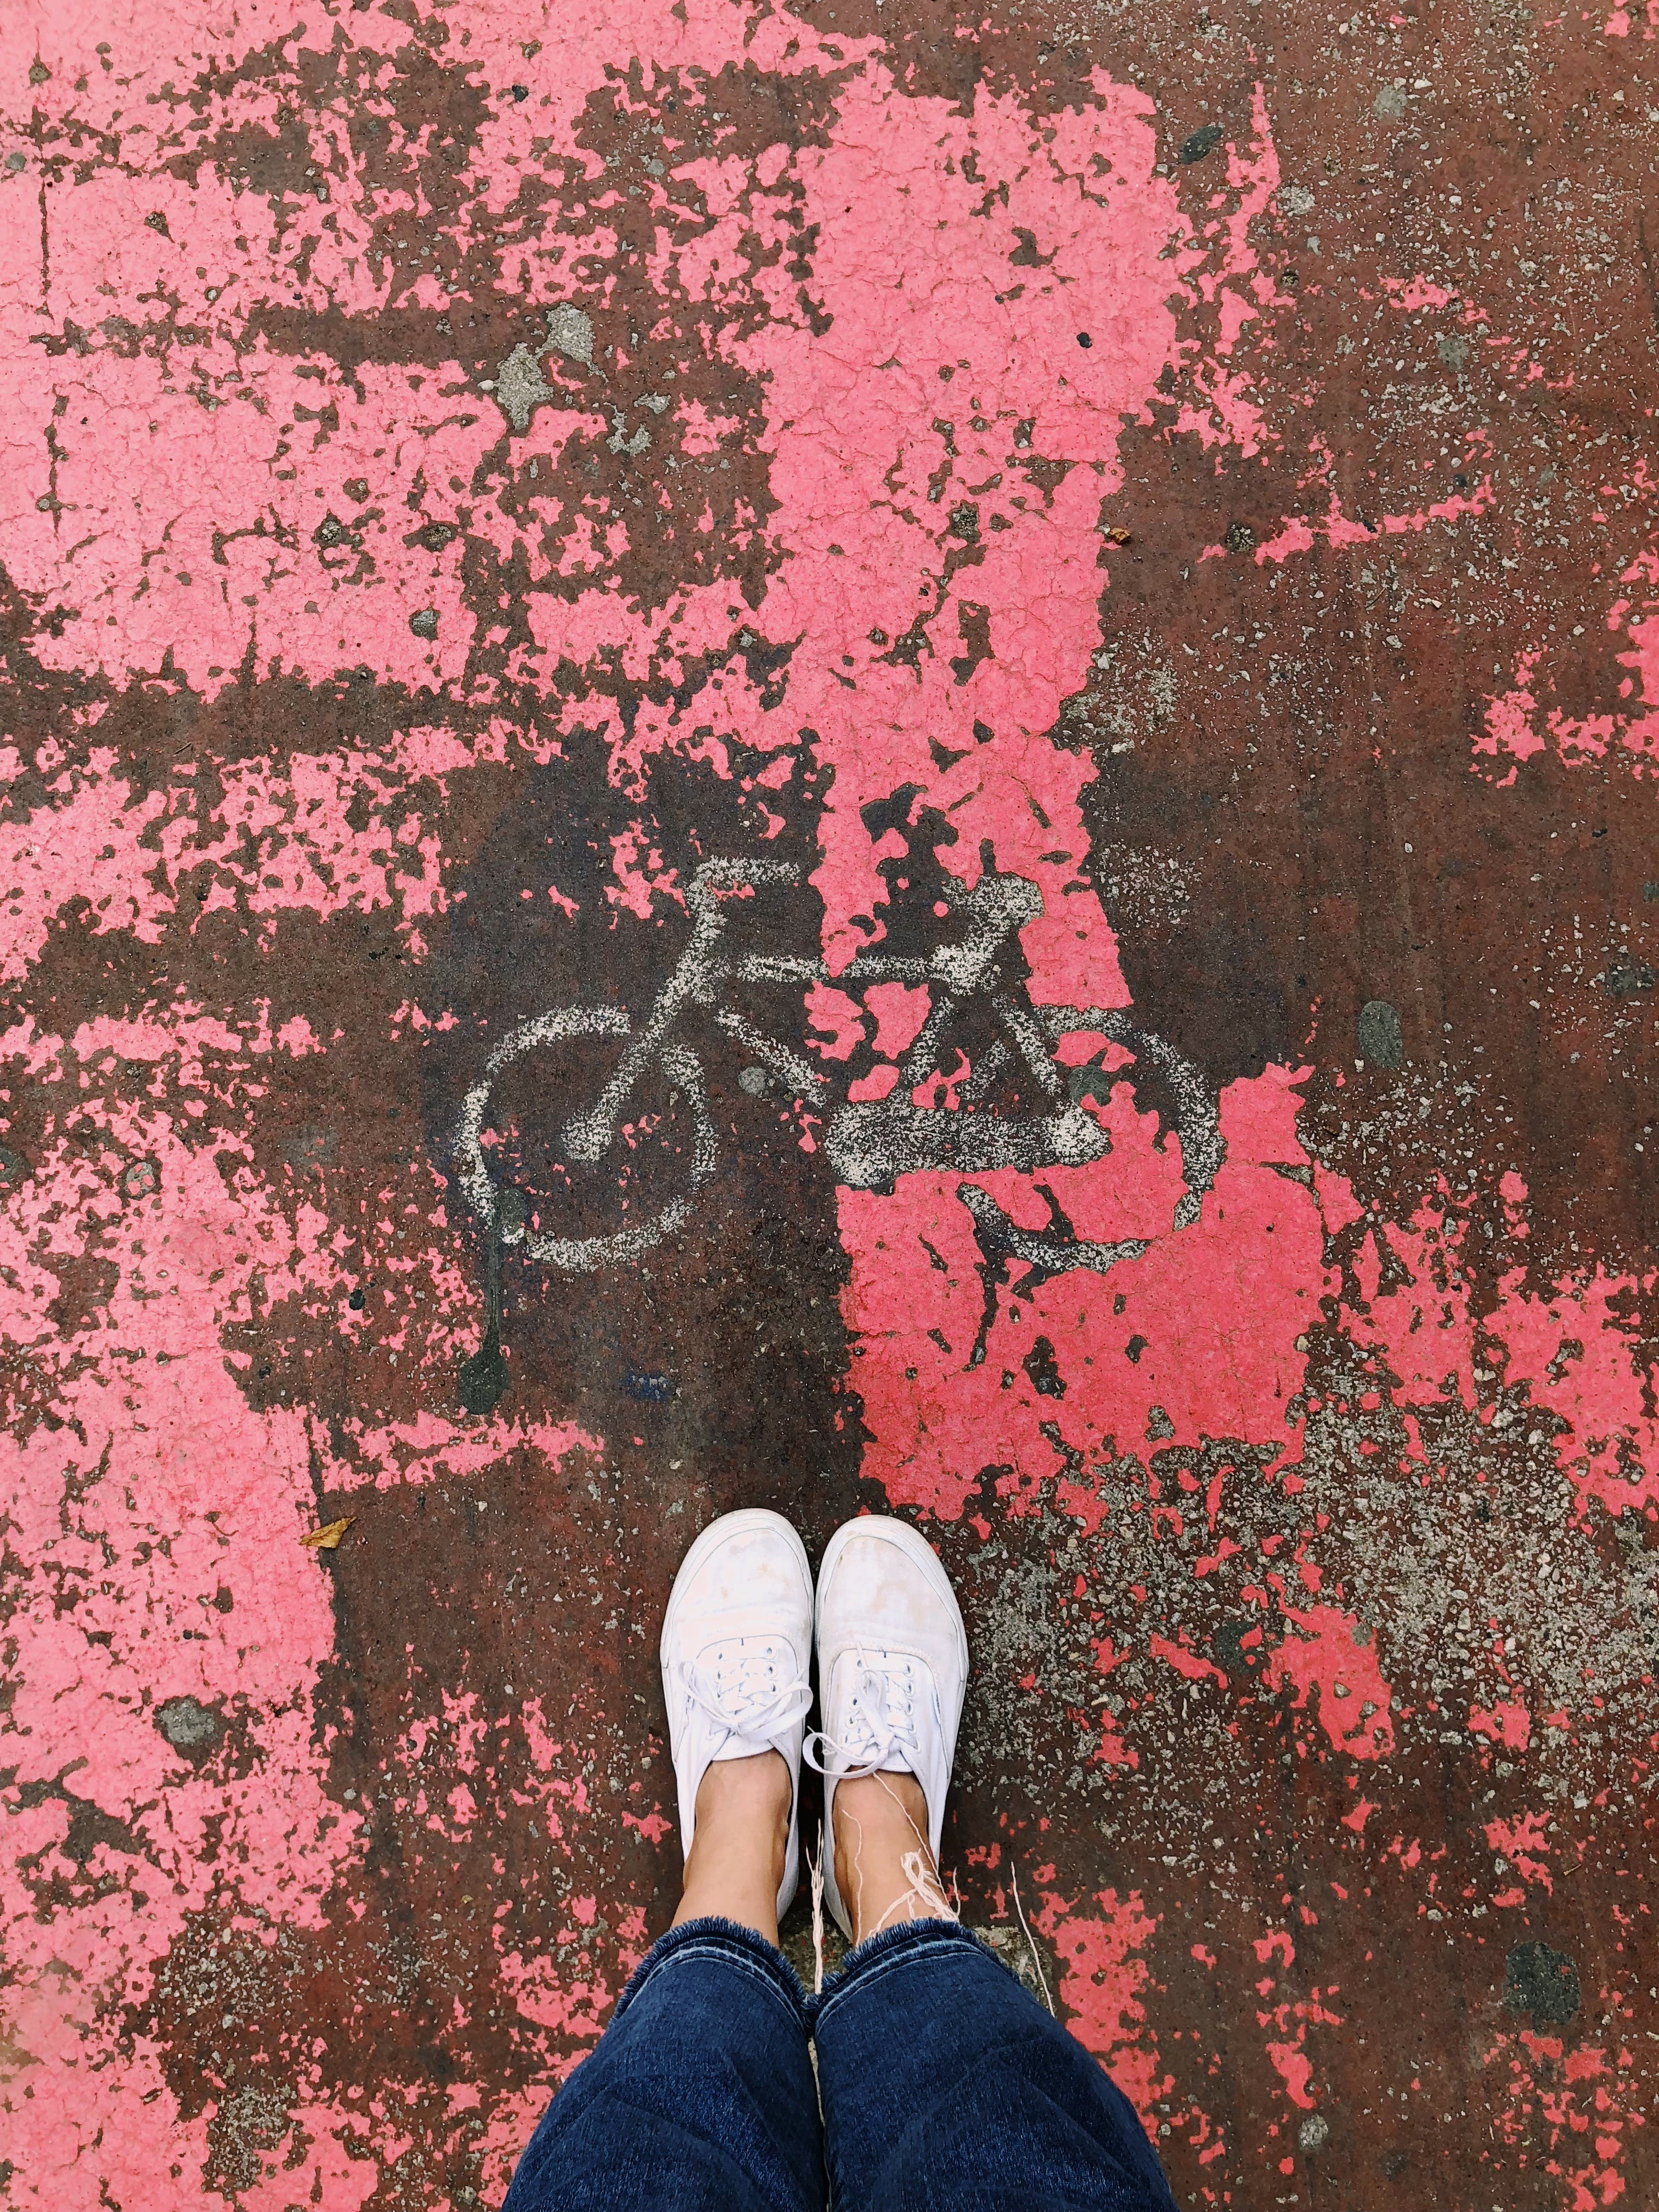 Person's Feet on Bicycle Artwork With Pink Background